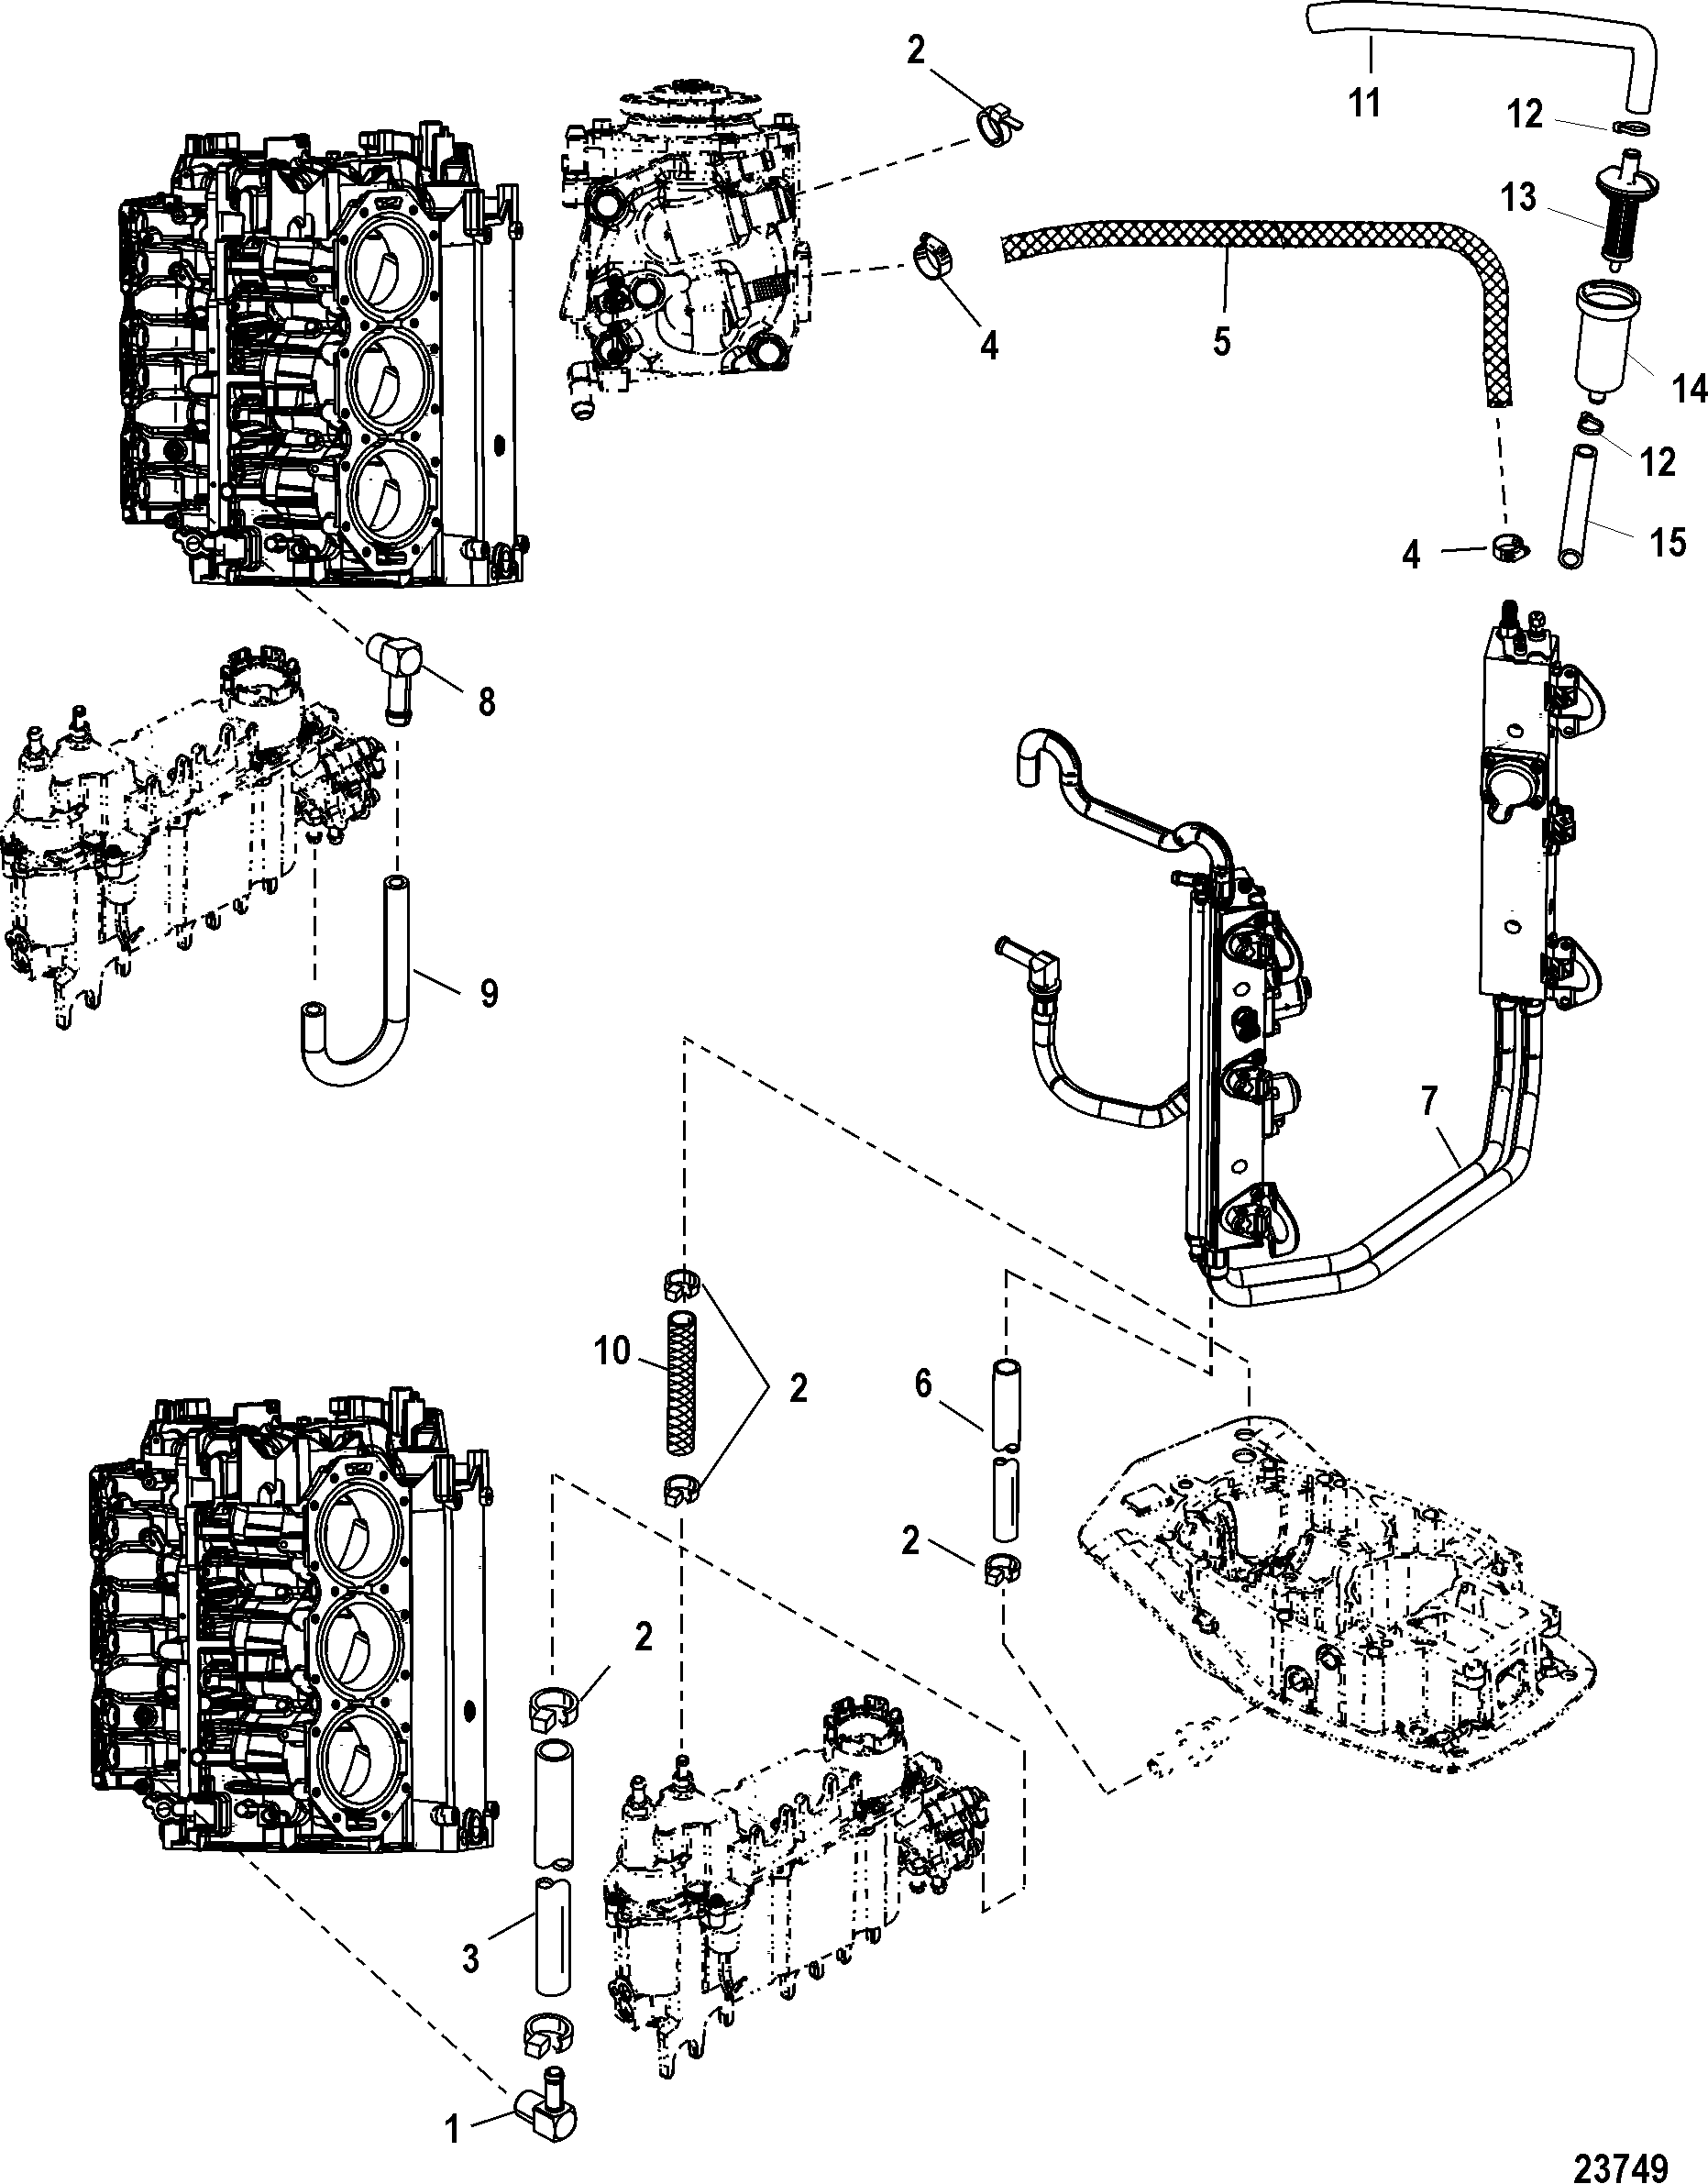 26 Optimax Fuel System Diagram